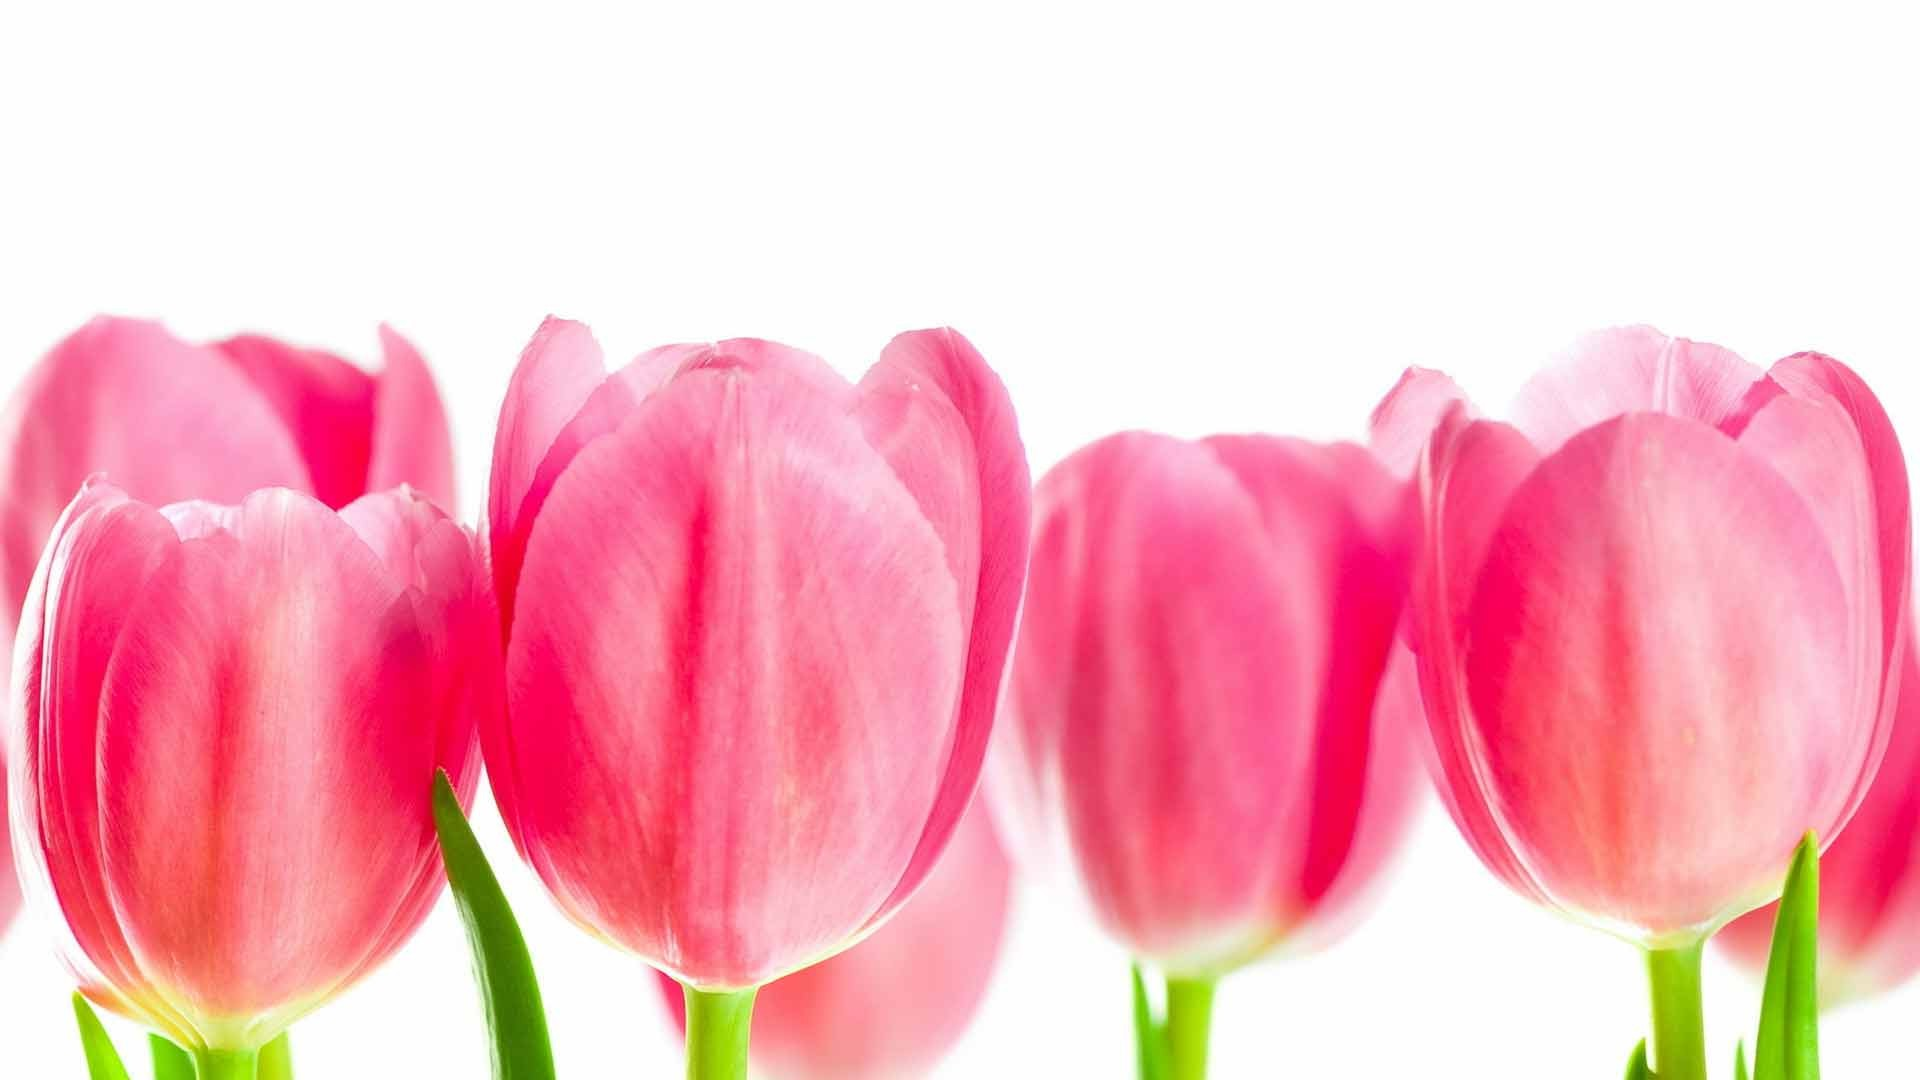 International Women's Day Flowers background